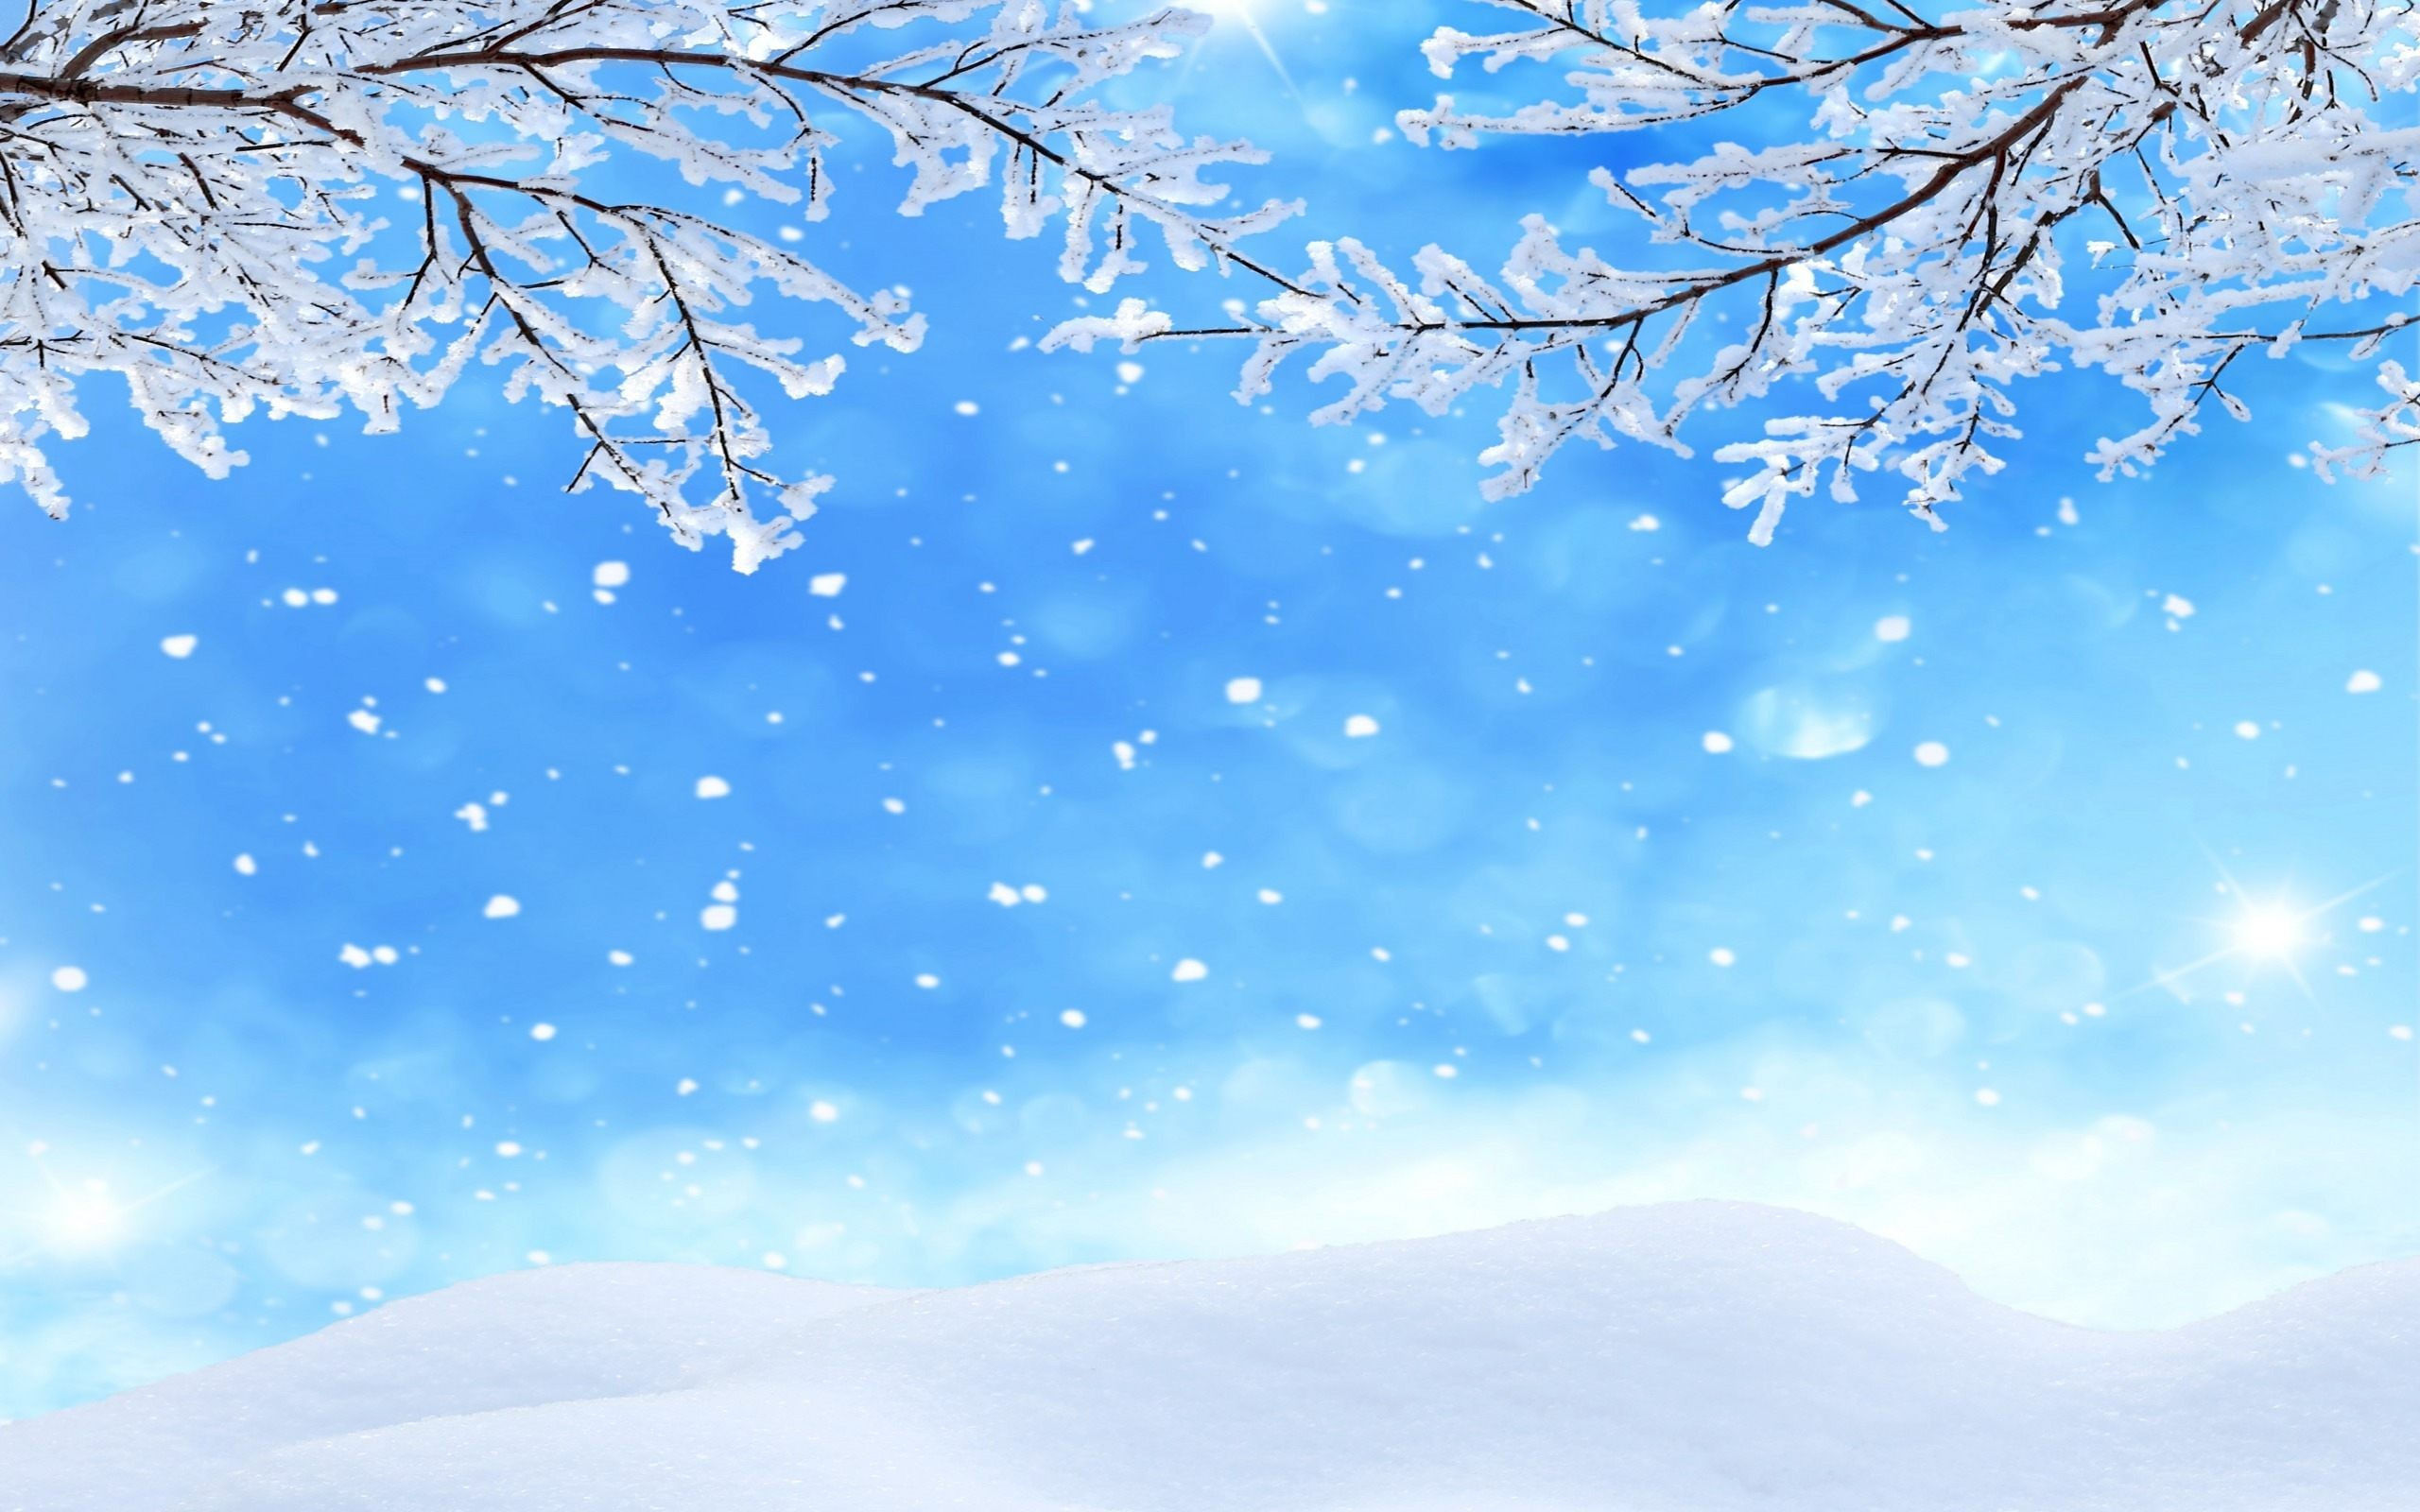 Winter Background Images ·① Download Free Awesome High